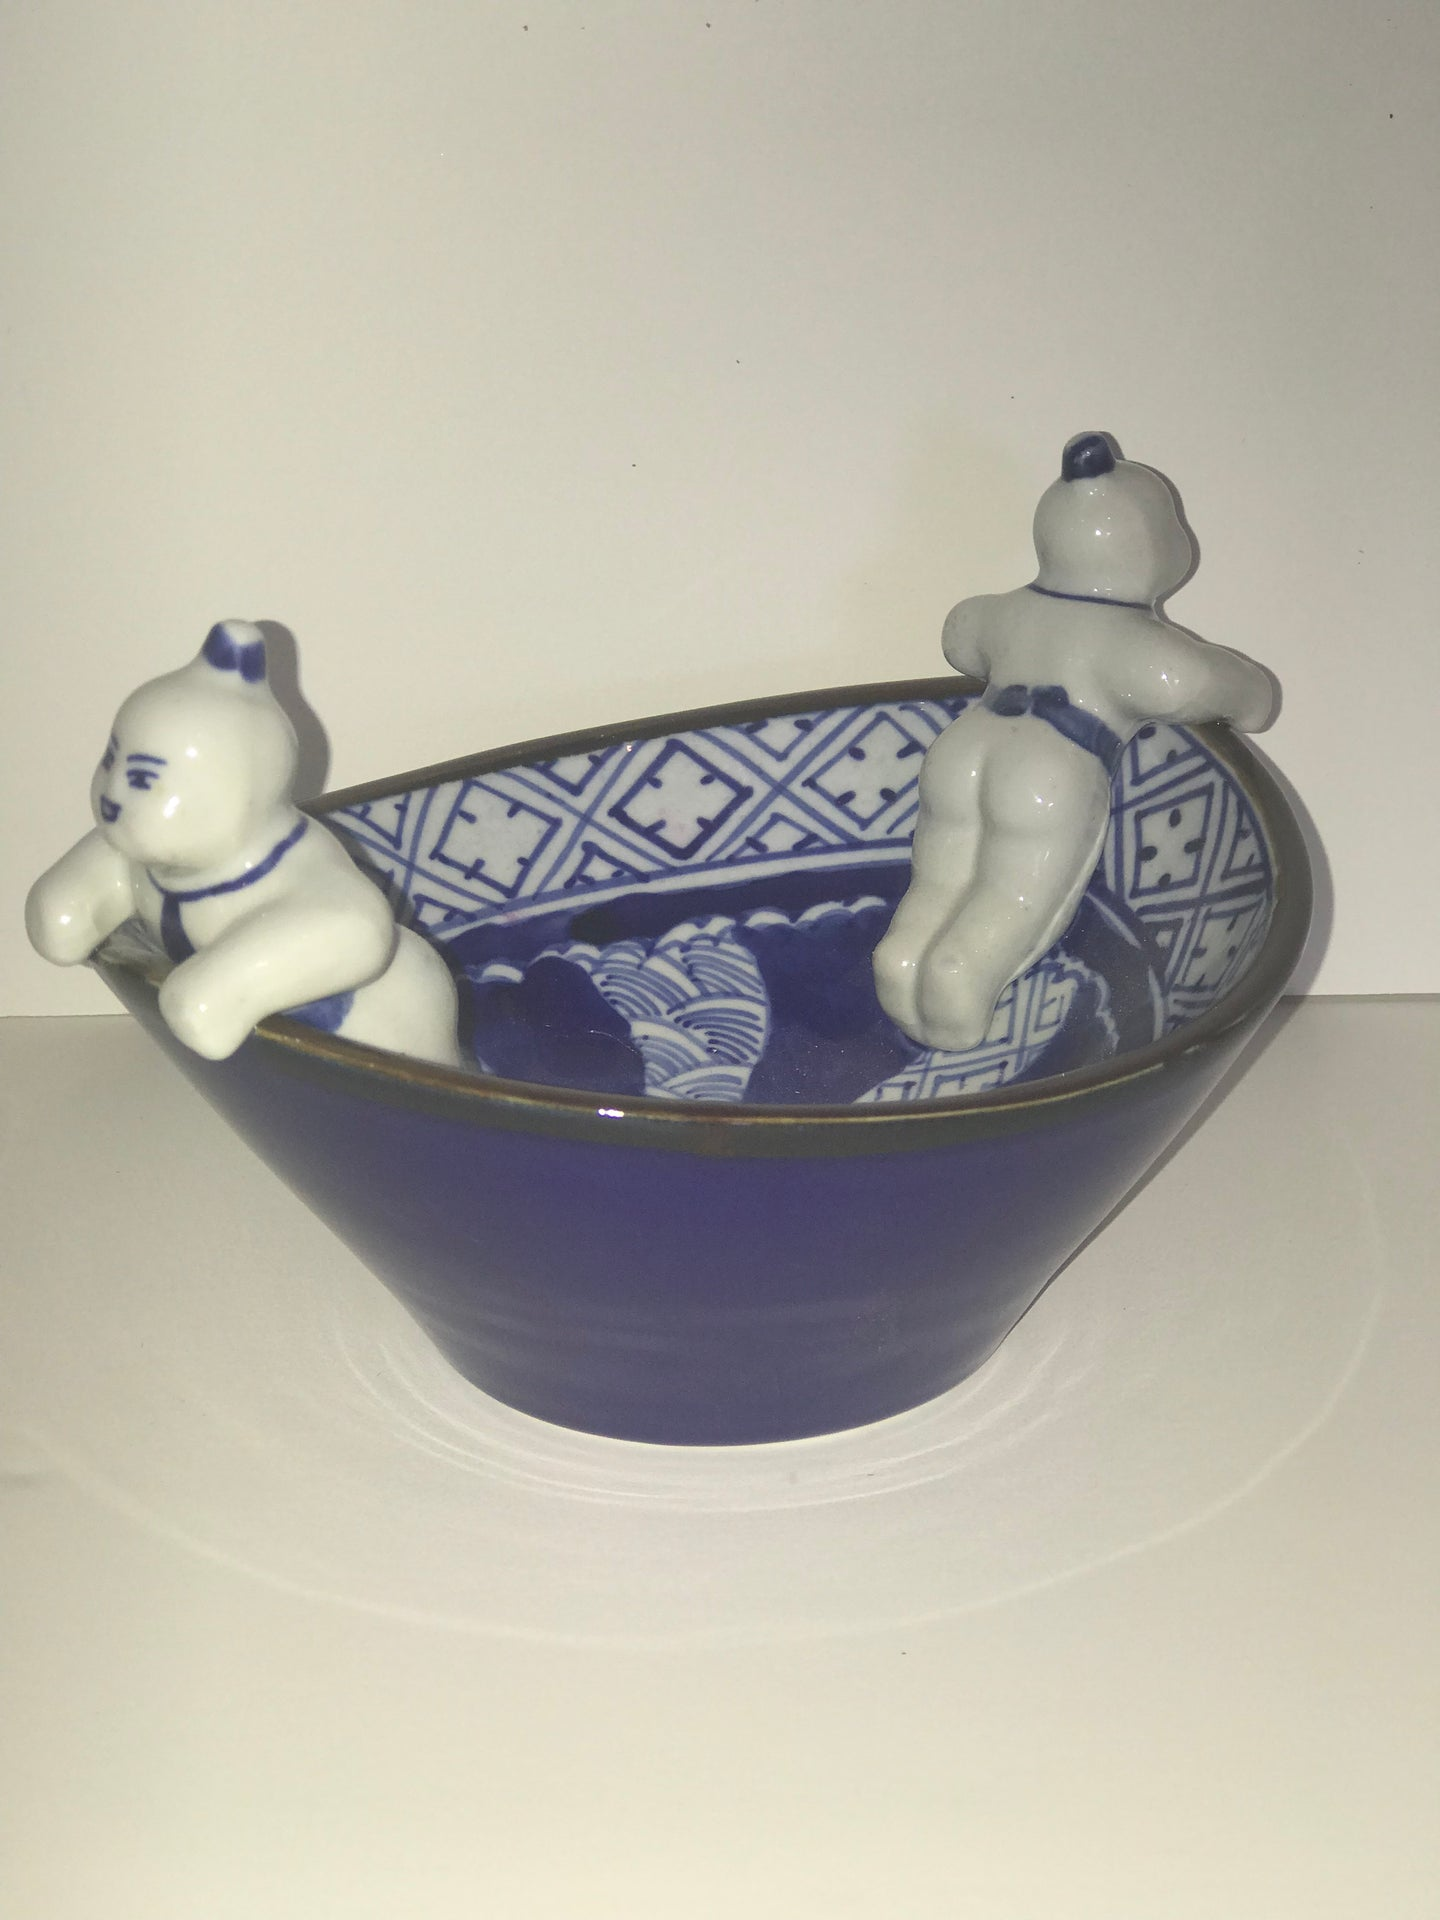 2 man -Whimsical Asian blule and white bowl. - The Sweetwood Collection